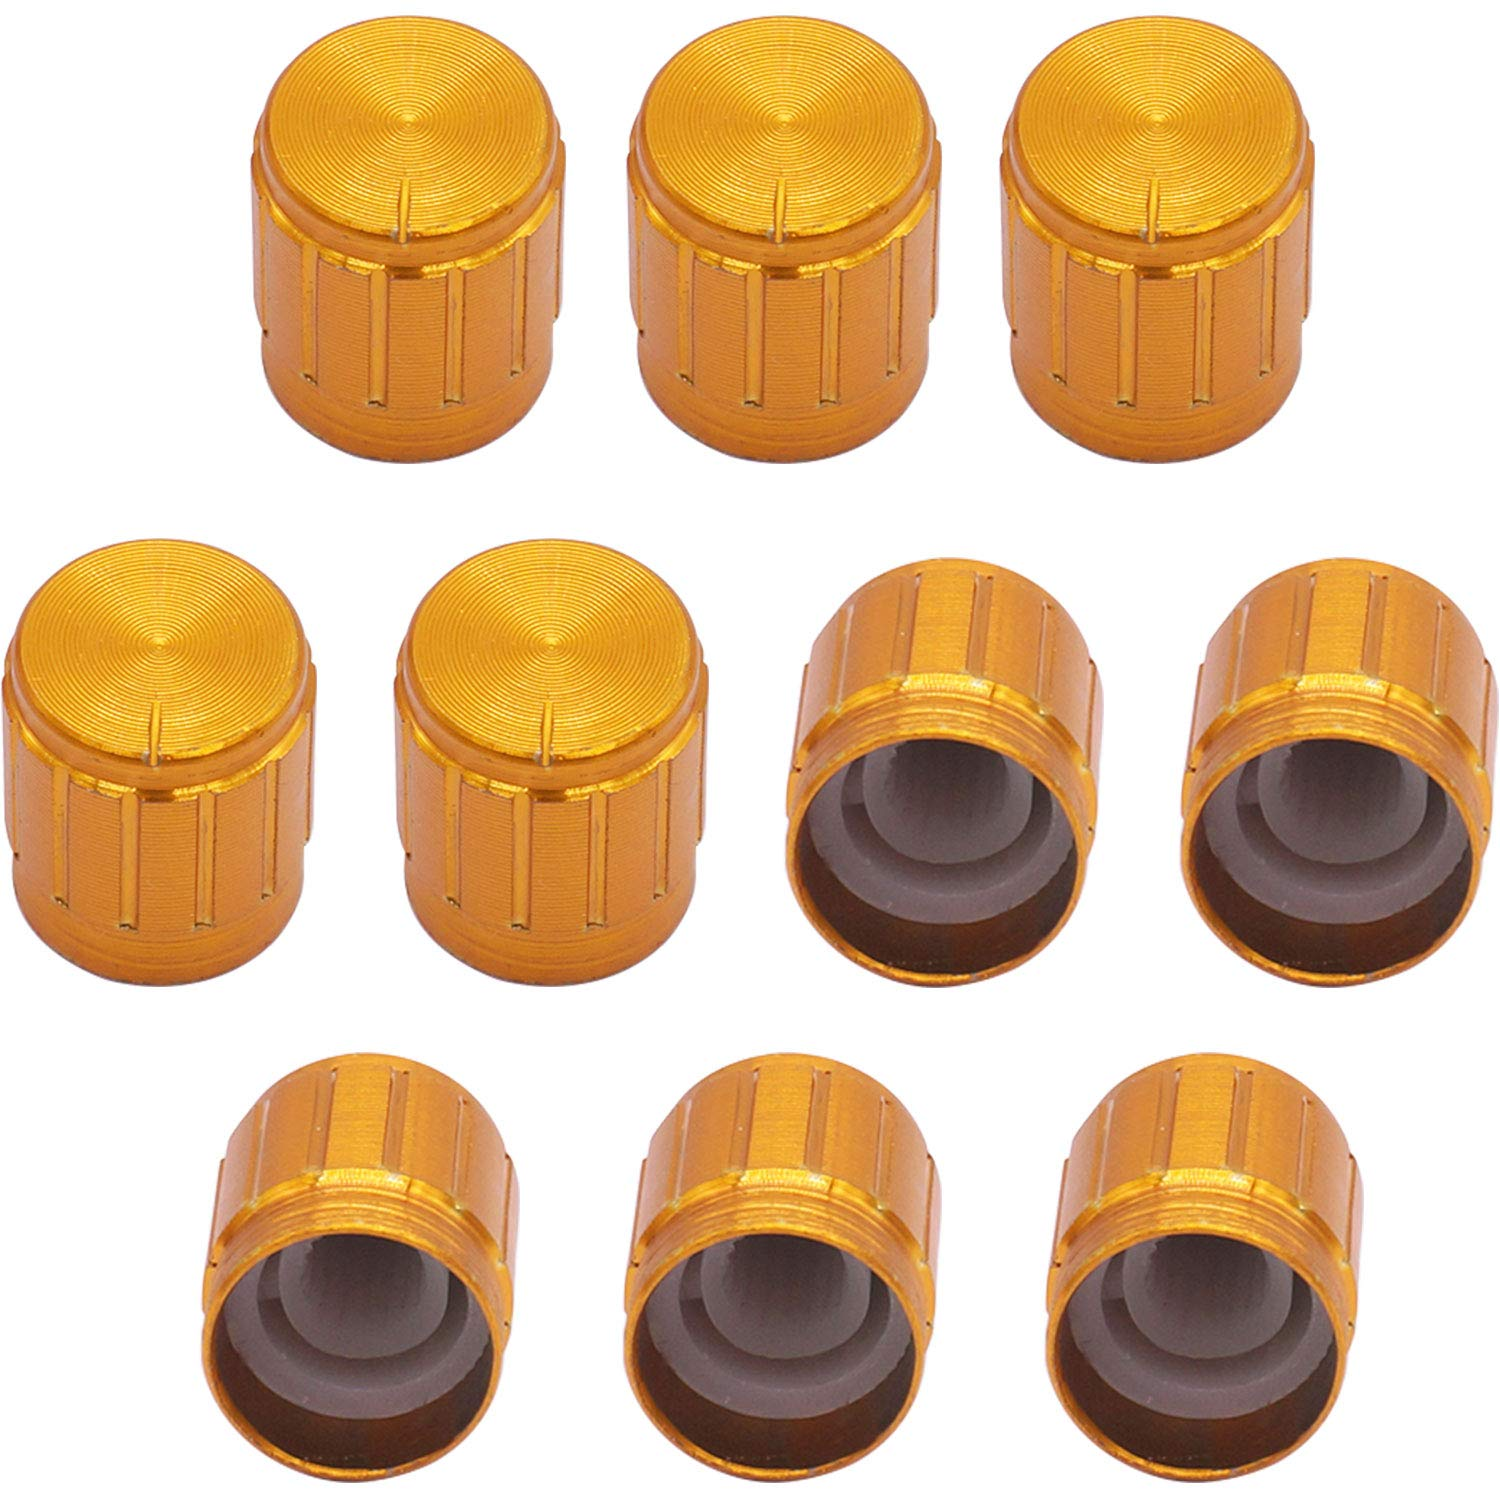 Taiss 10pcs Raleigh Mall Golden New Shipping Free Shipping Color Metal 6 Shaft Po mm Knurled Insert Dia.